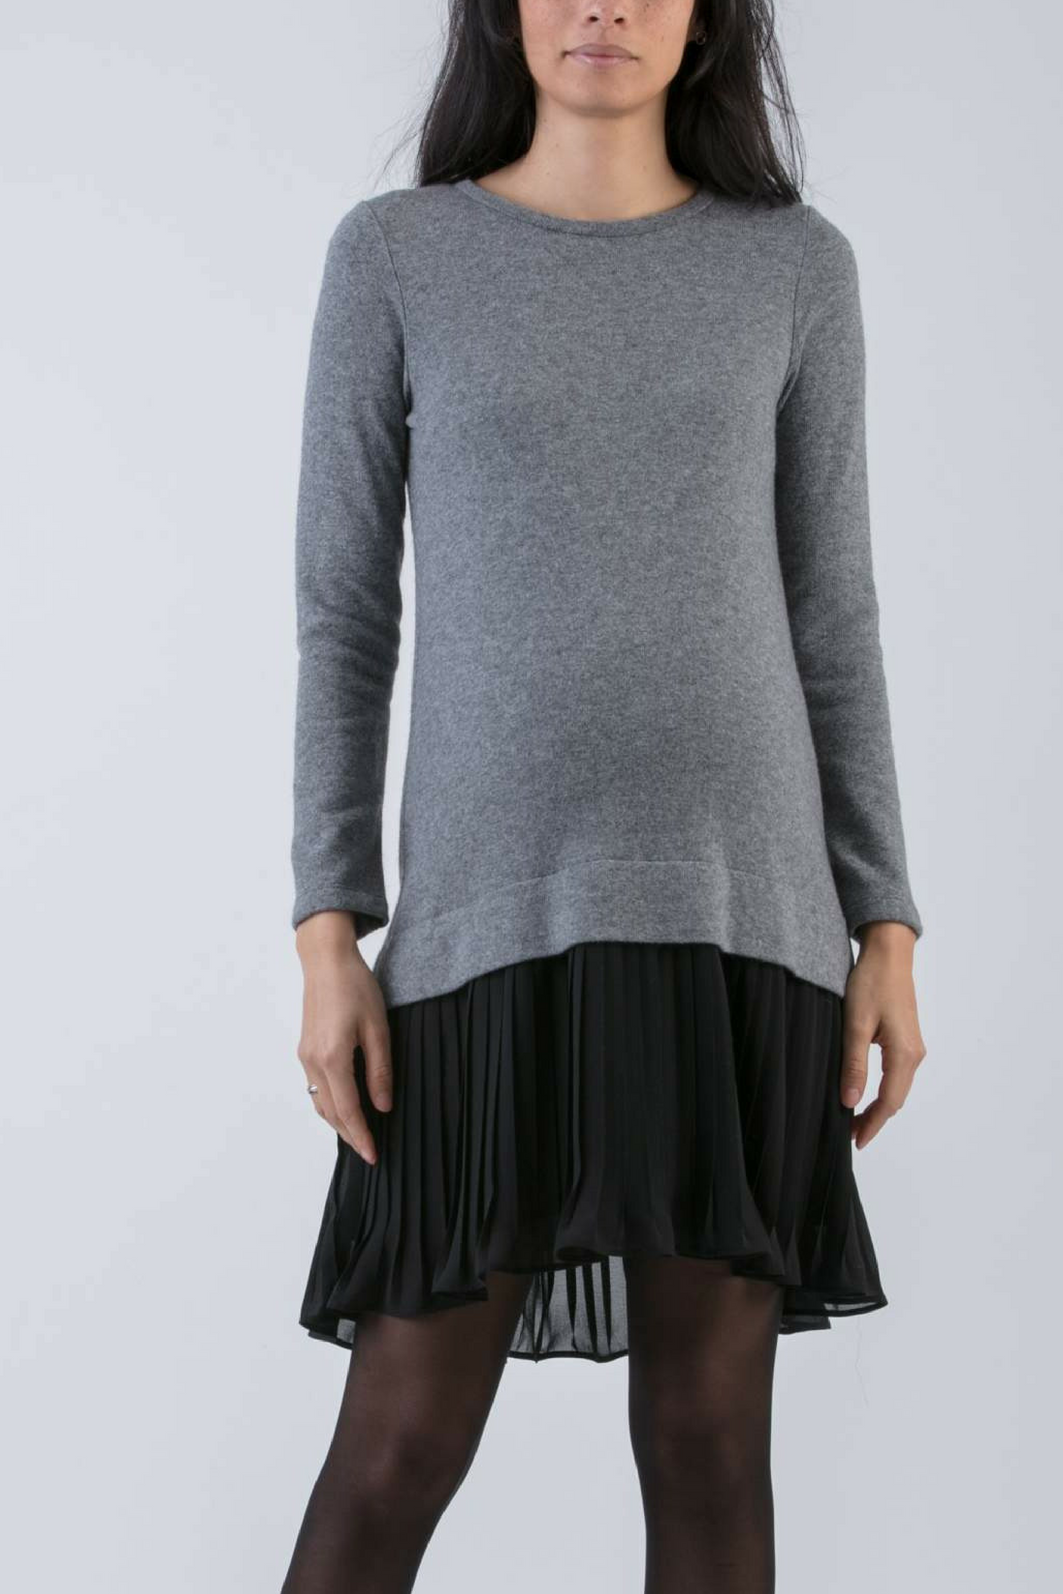 Bettinaa Cashmere and Chiffon Dress